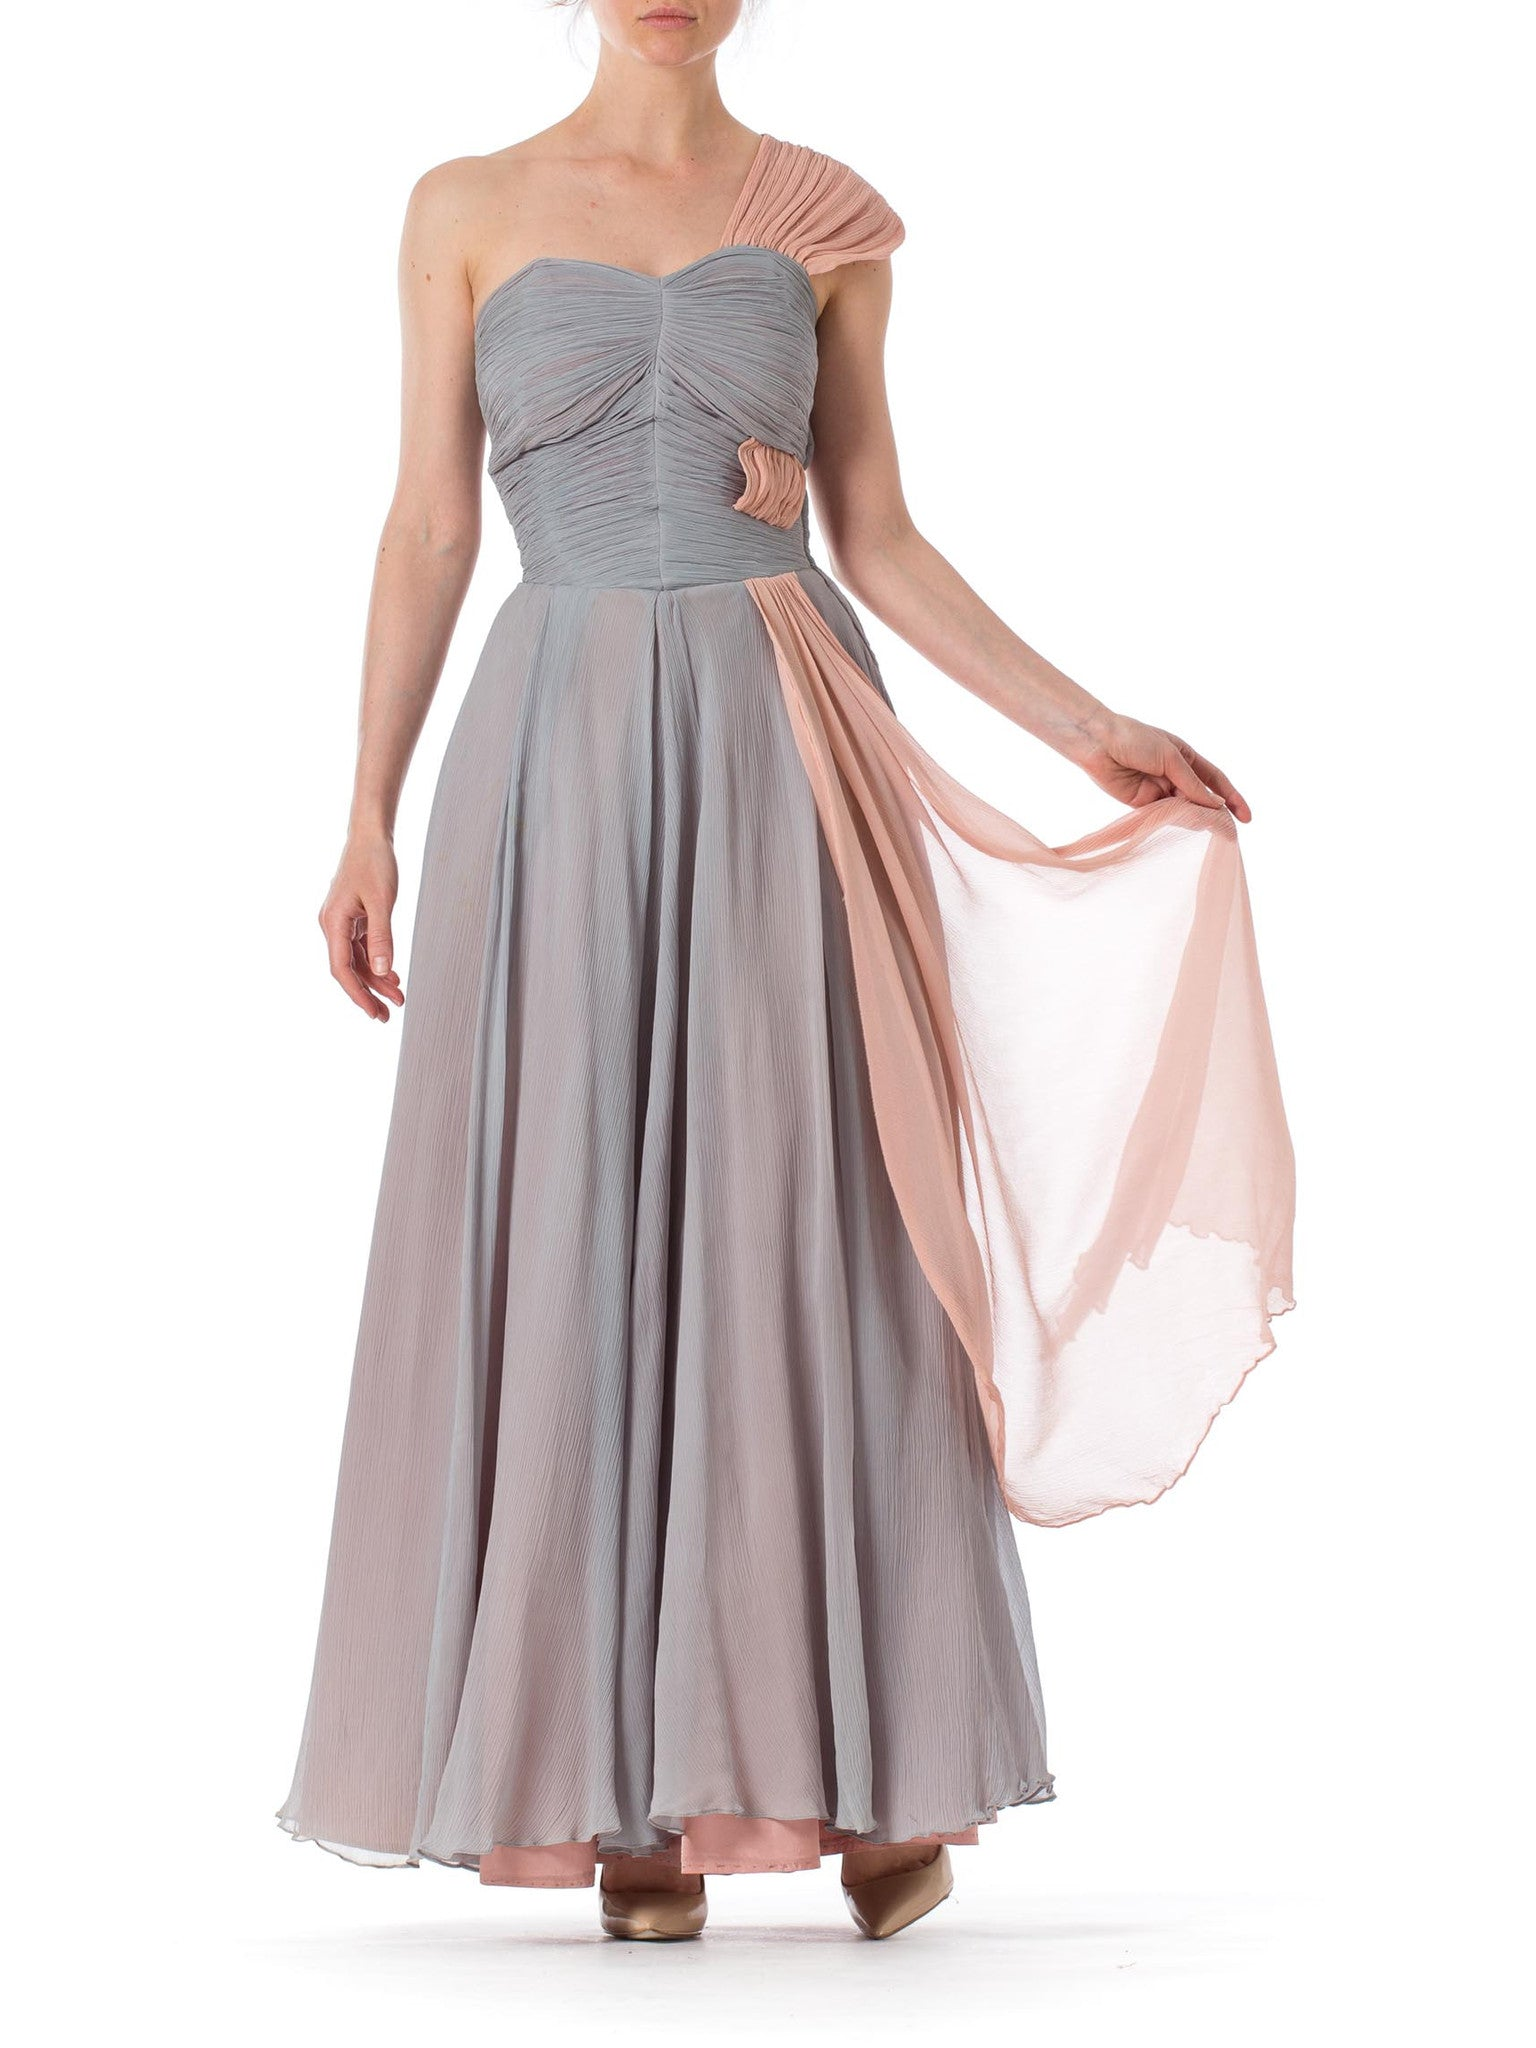 1940s One Shoulder Blue Chiffon Flowy Ball Gown